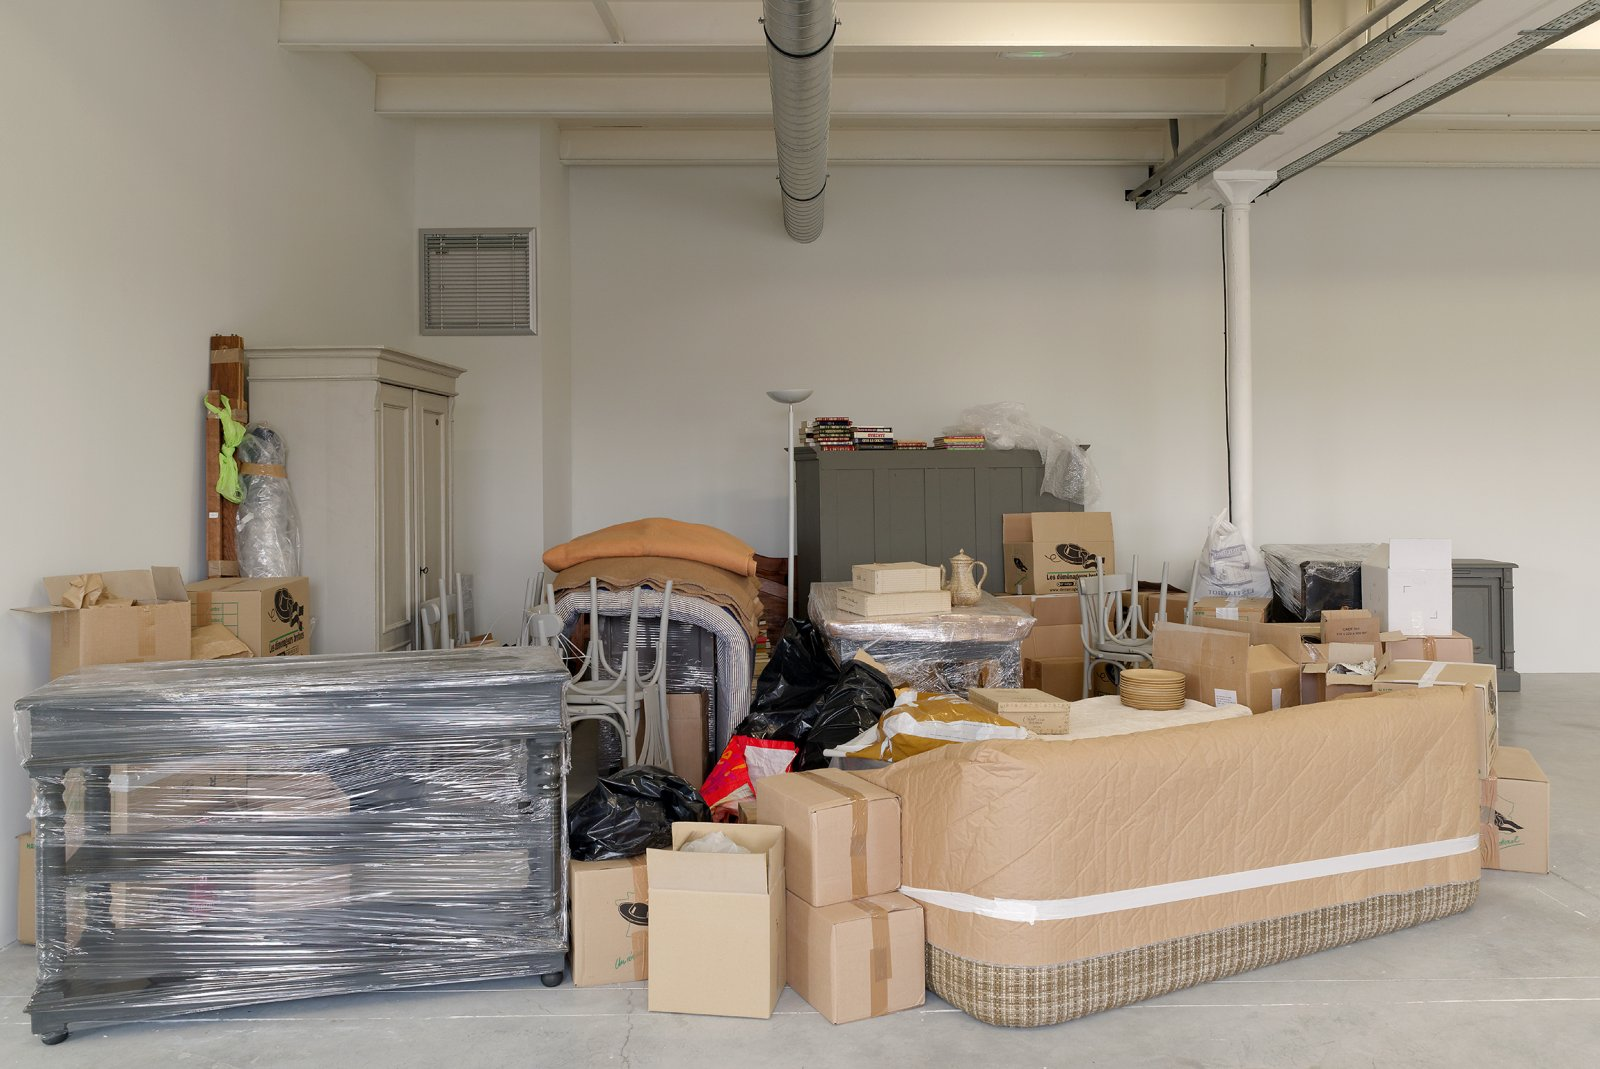 Liz Magor, One Bedroom Apartment (detail), 1996, polyester resin, contents of a one-bedroom apartment, dimensions variable. Installation view, NoFear,NoShame,NoConfusion,TriangleFrance,Marseille,France, 2013 by Liz Magor